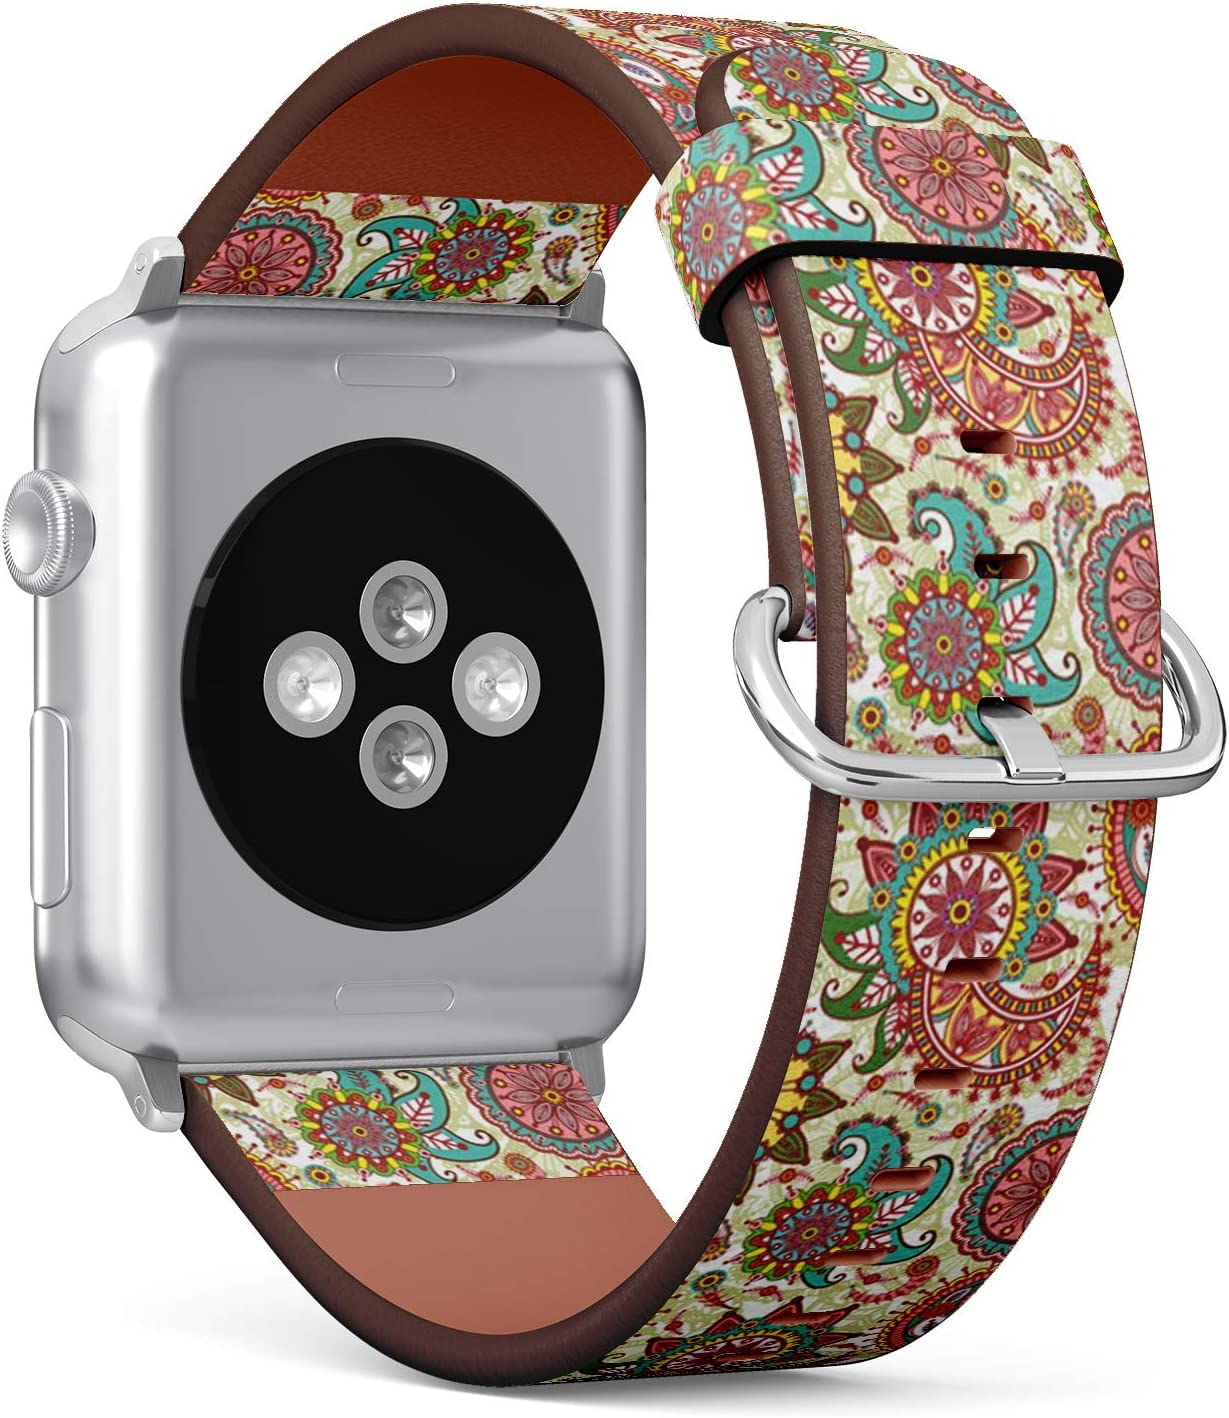 Compatible with Small Apple Watch 38mm & 40mm (Series 5, 4, 3, 2, 1) Leather Watch Wrist Band Strap Bracelet with Stainless Steel Clasp and Adapters (Paisley Flowers)